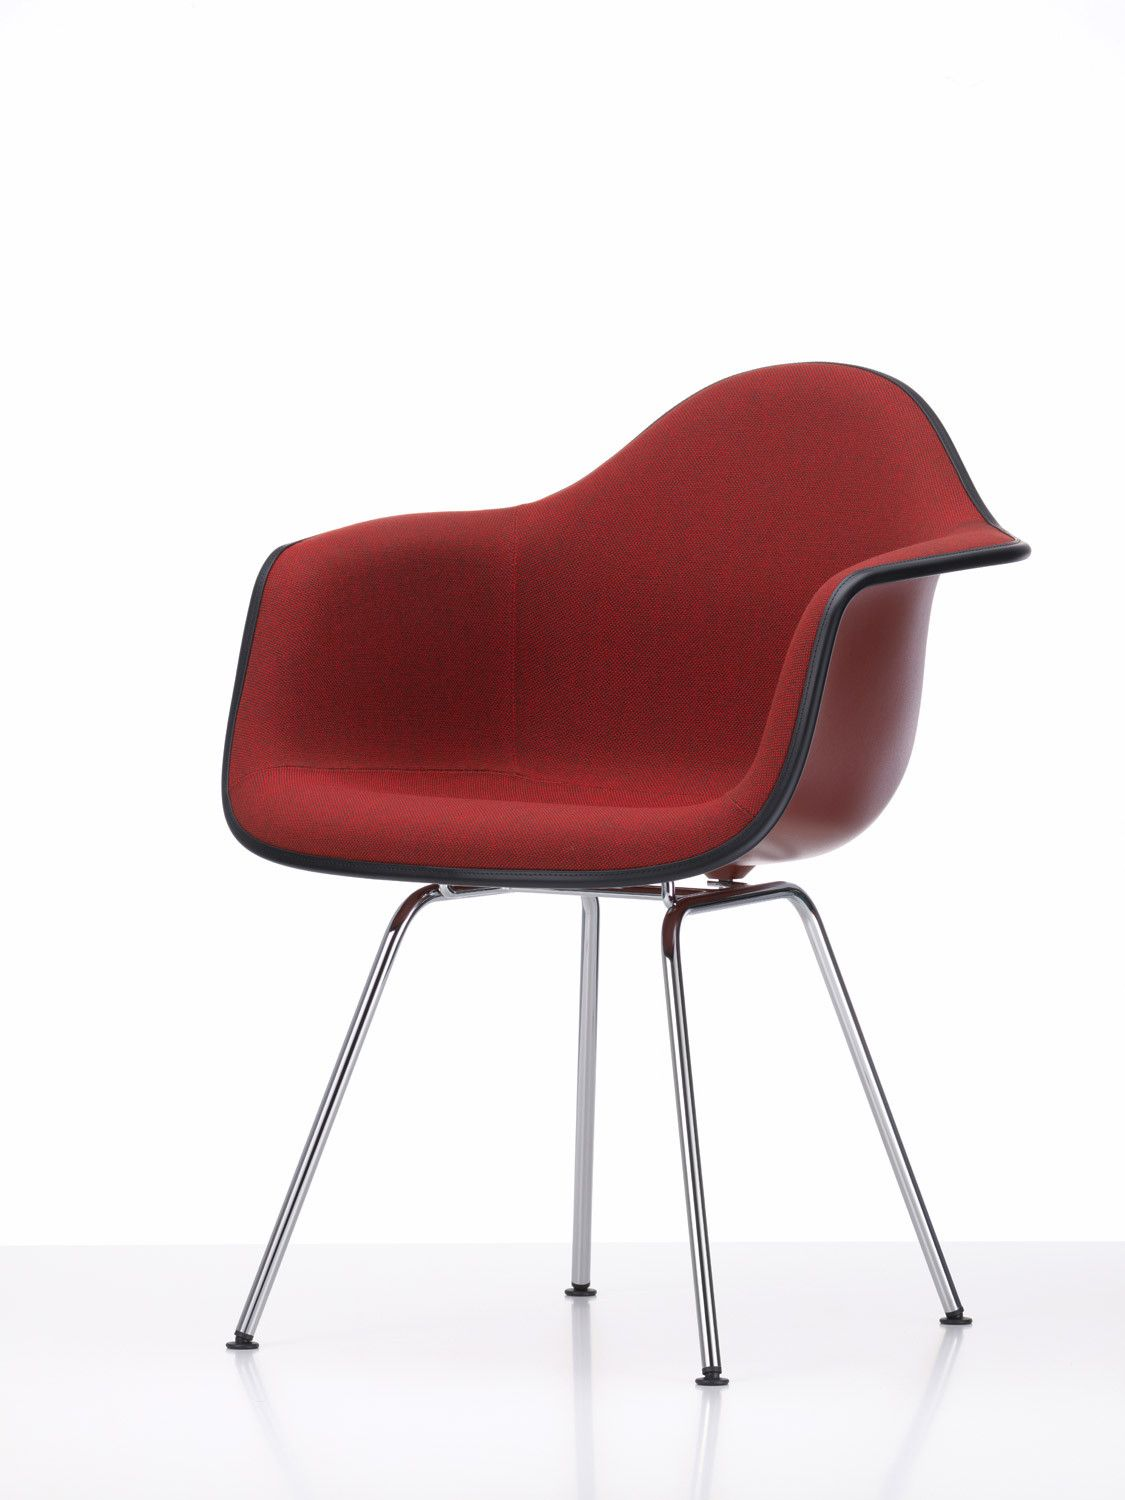 Eames DAX Chair Fully Upholstered Chair, Upholstered